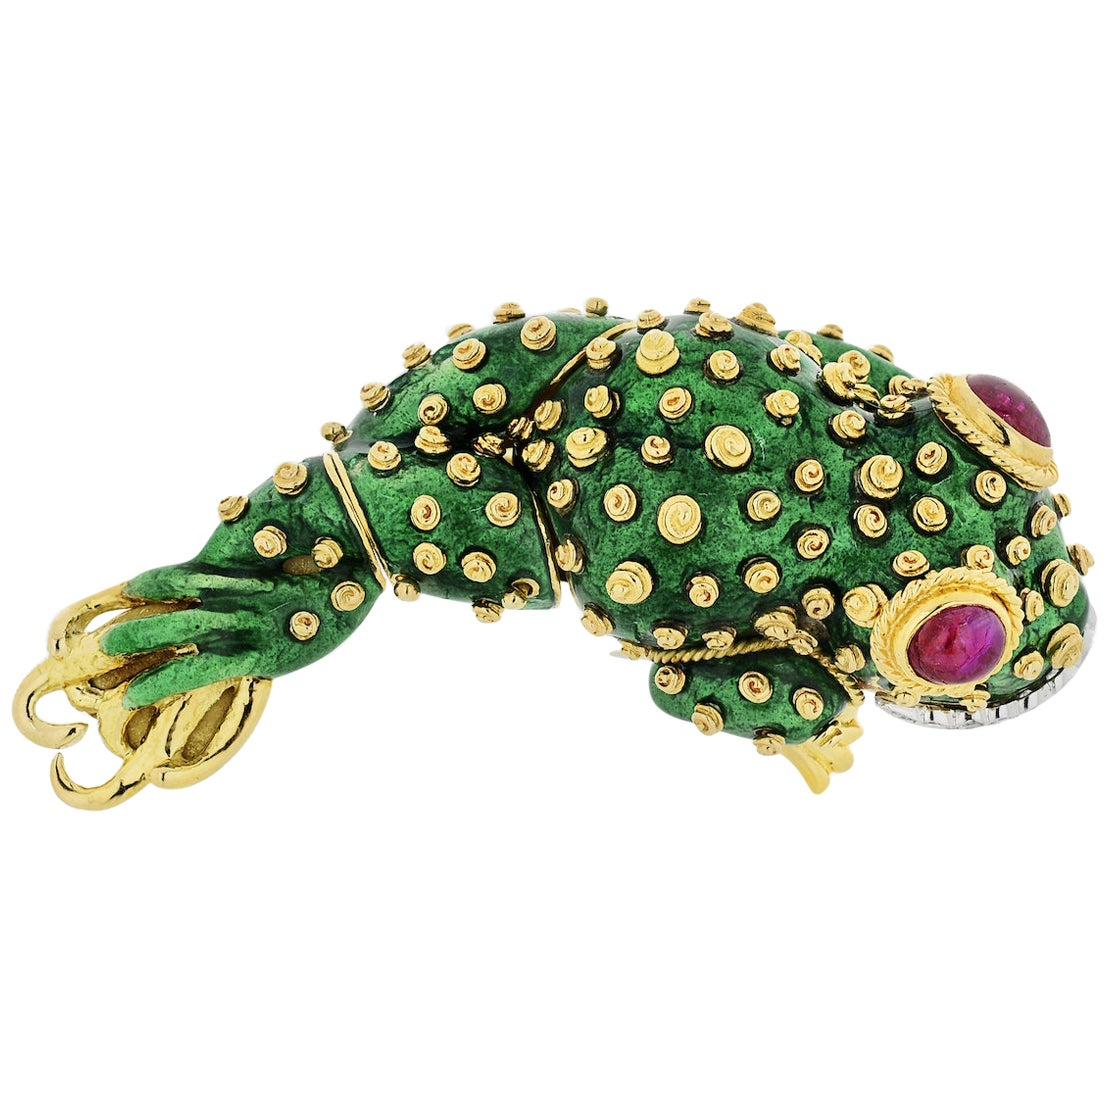 David Webb Tadpole Platinum and 18 Karat Yellow Gold Green Enamel Frog Brooch